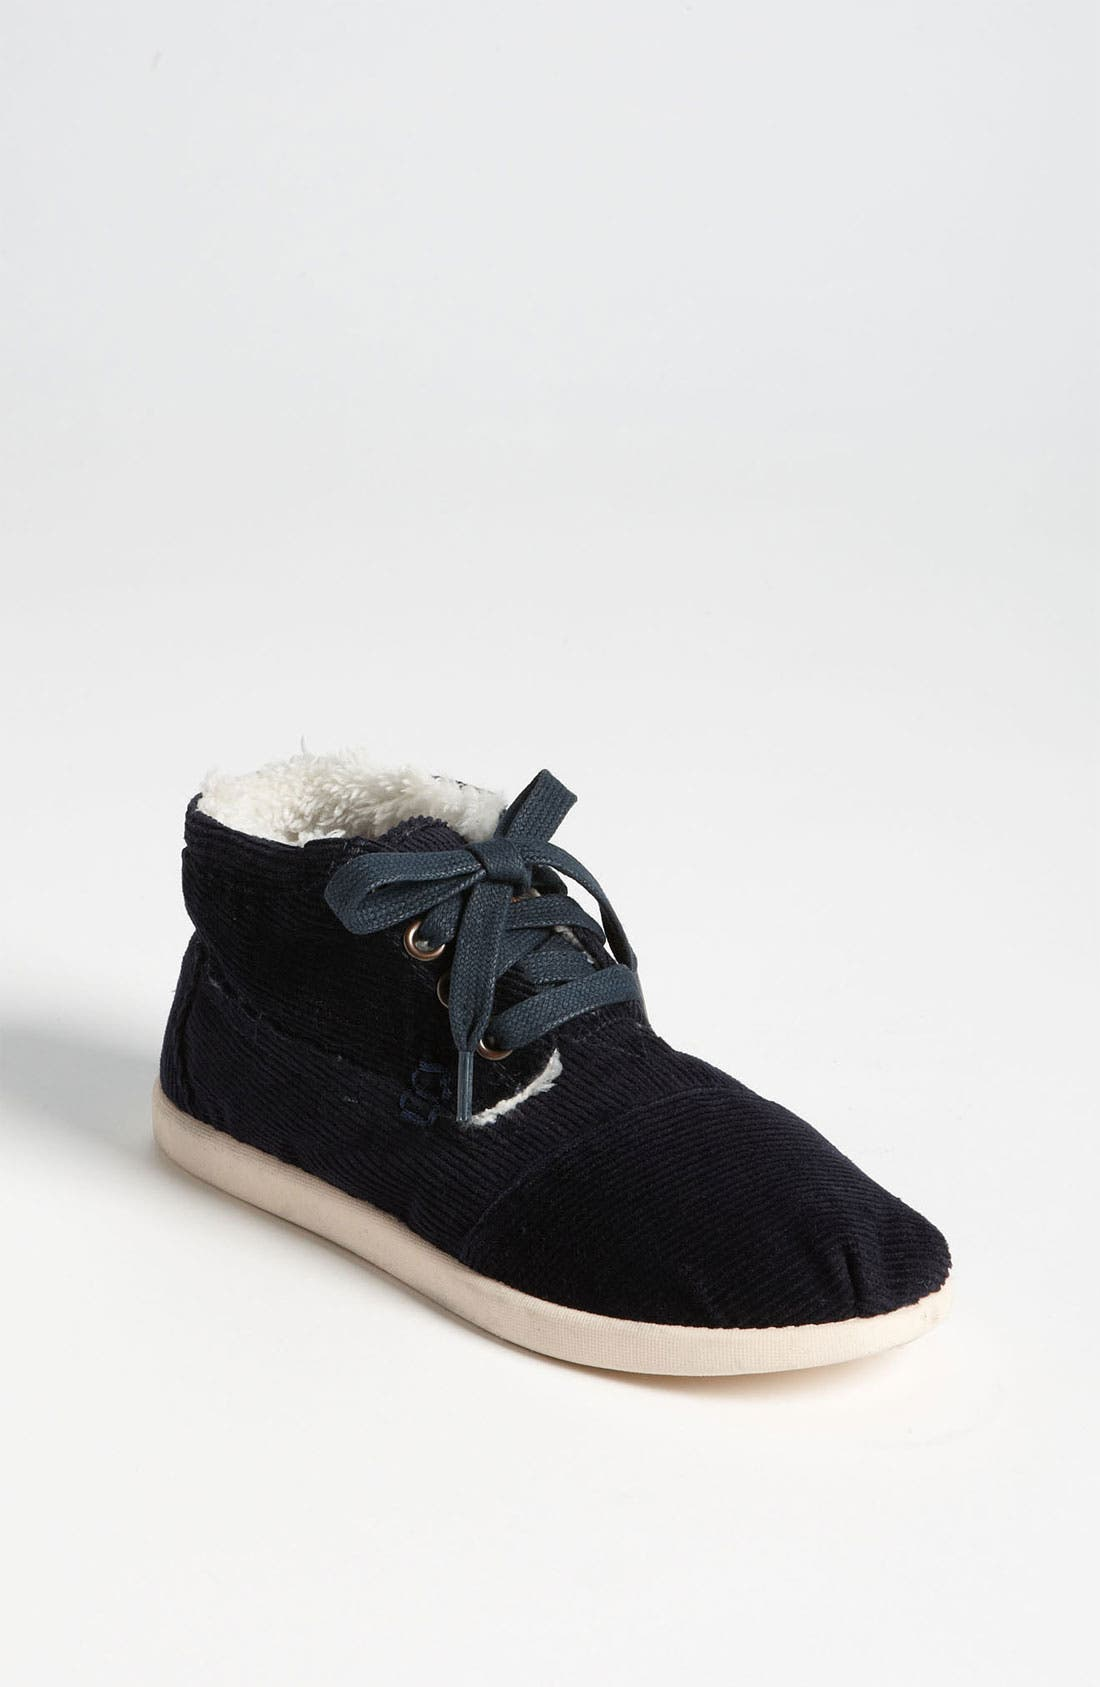 Alternate Image 1 Selected - TOMS 'Botas - Youth' Corduroy Boot (Toddler, Little Kid & Big Kid)